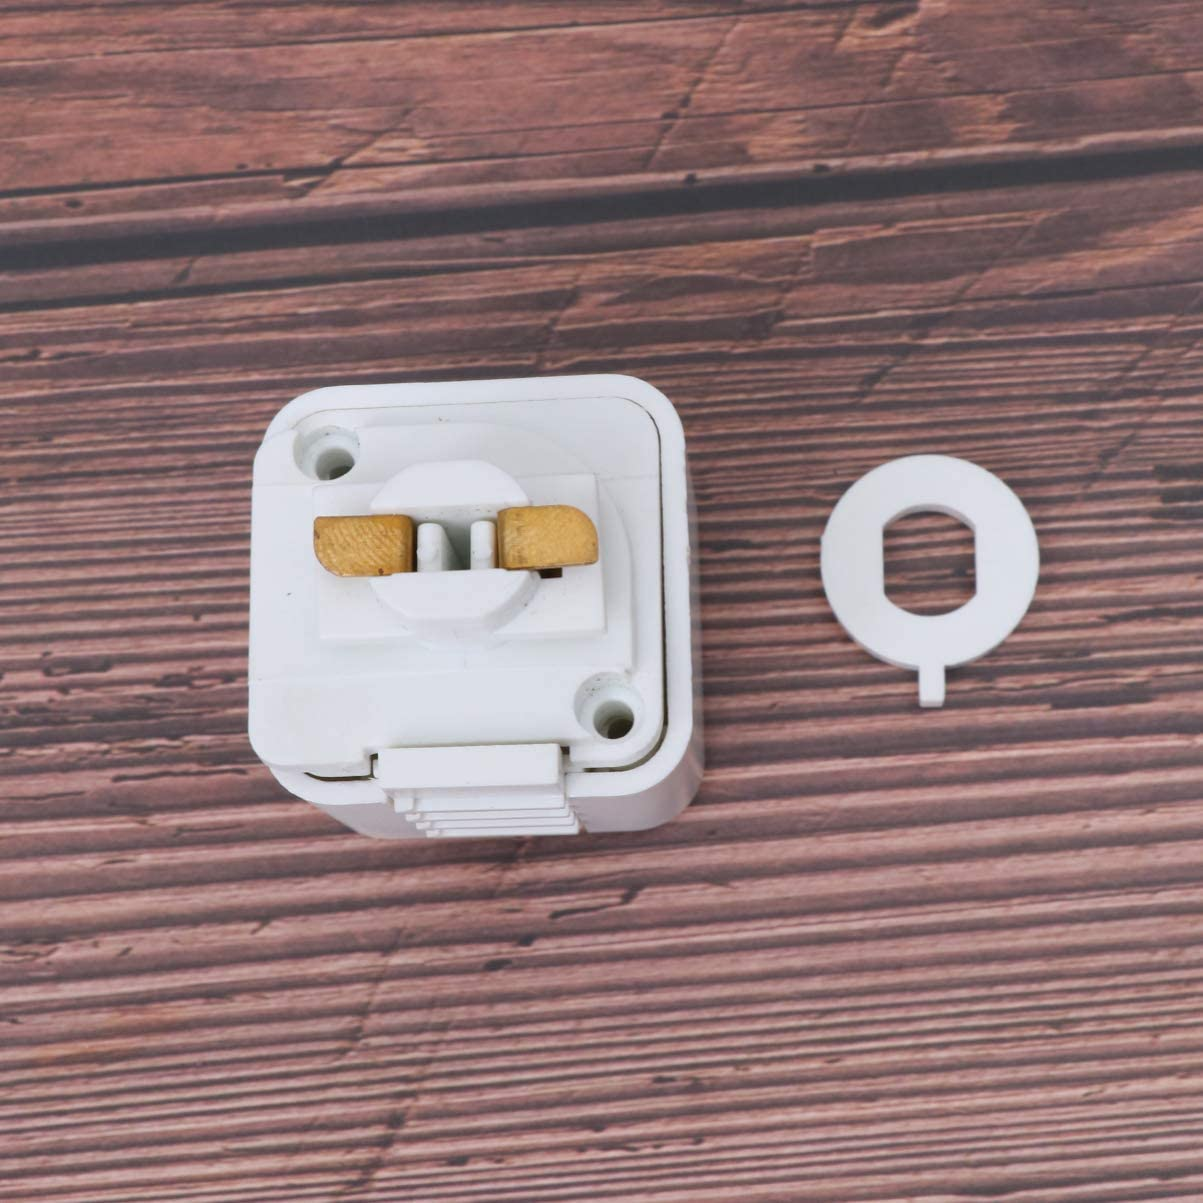 Mobestech Track Light Fixture 2 Wire Track Lamp Connector Adapter Rail Head Replacement for Living Room Home